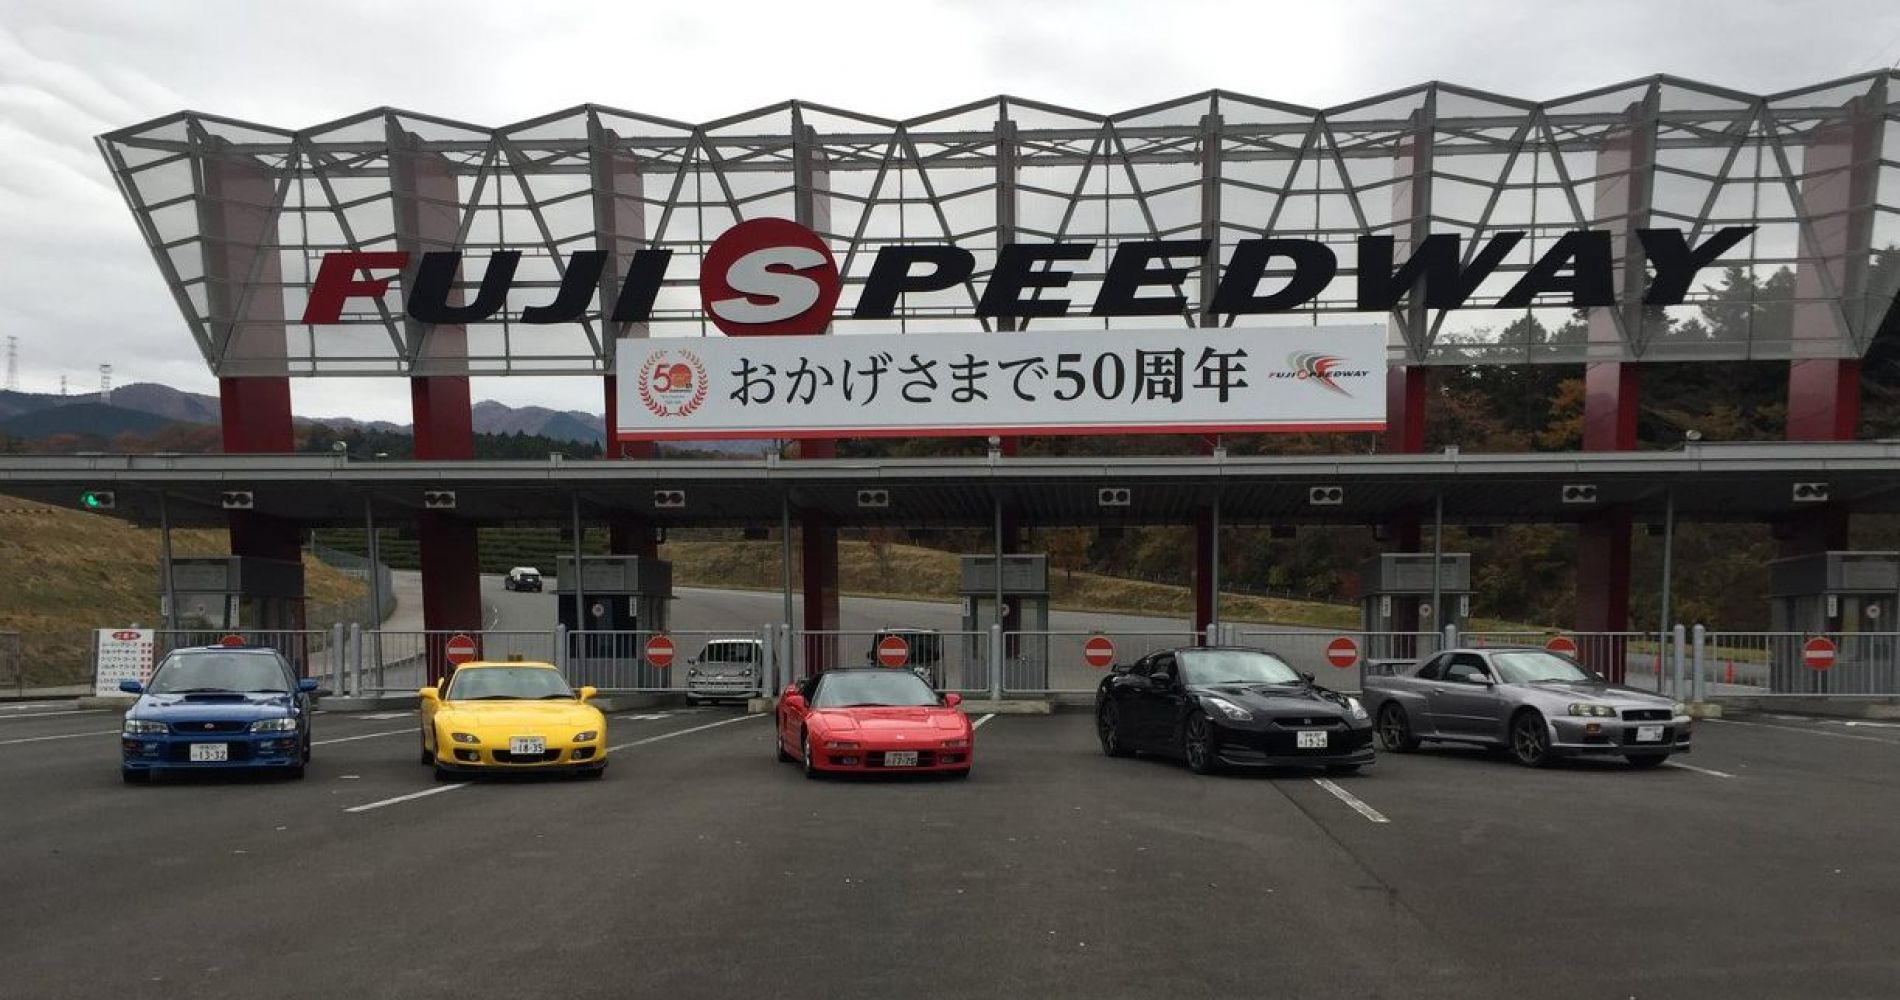 Holy Mt. Fuji Drive with Porsche 911 Turbo 964 or Any Other in Japan